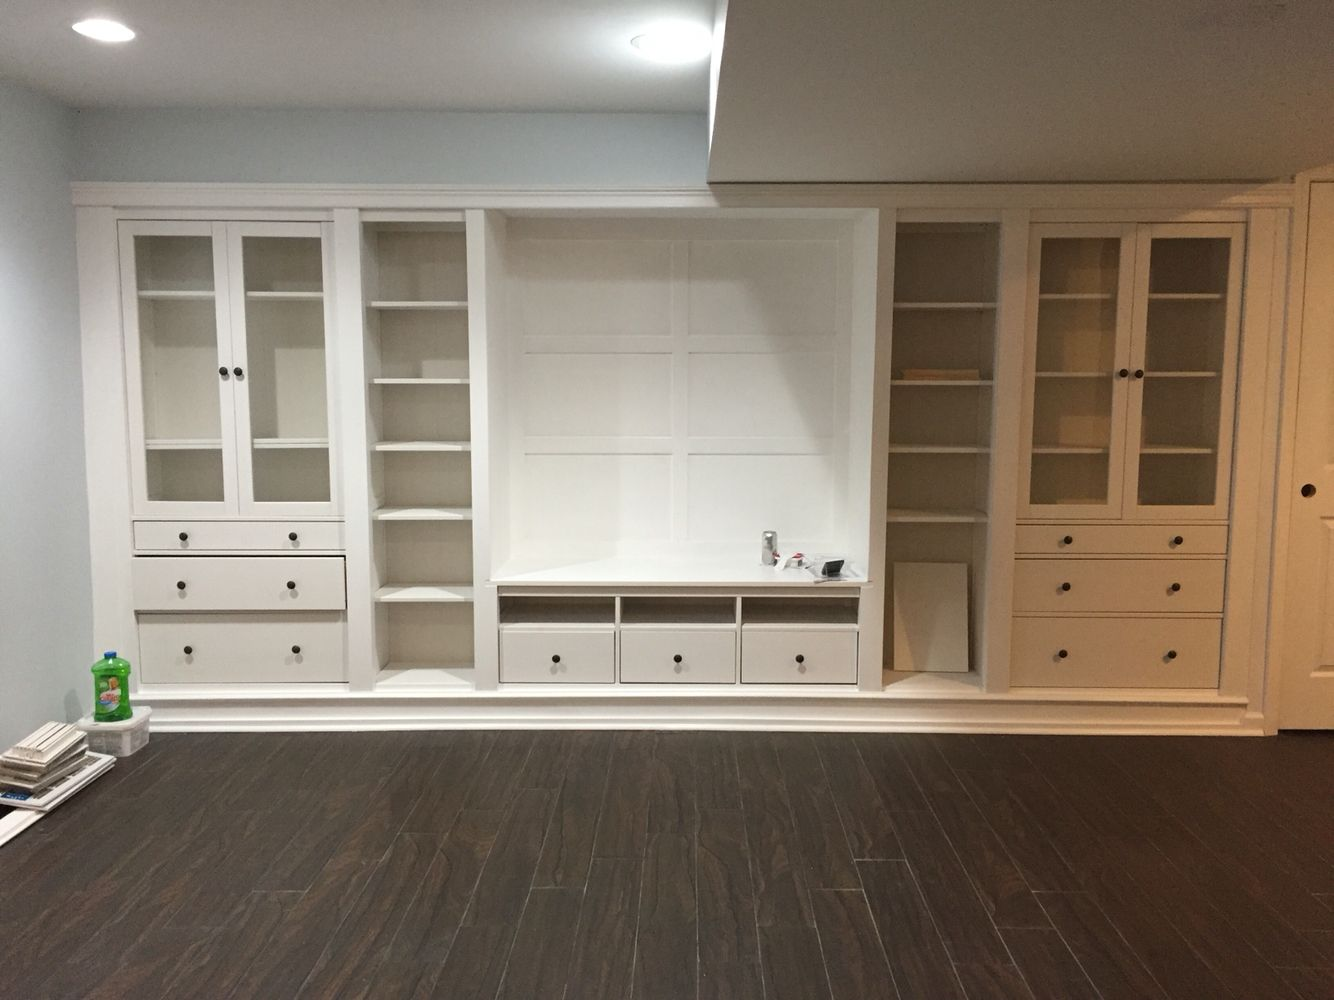 Arbeitszimmer ikea hemnes  IKEA Hack Built Ins In Our Basement-Hemnes Series | Ideen ...